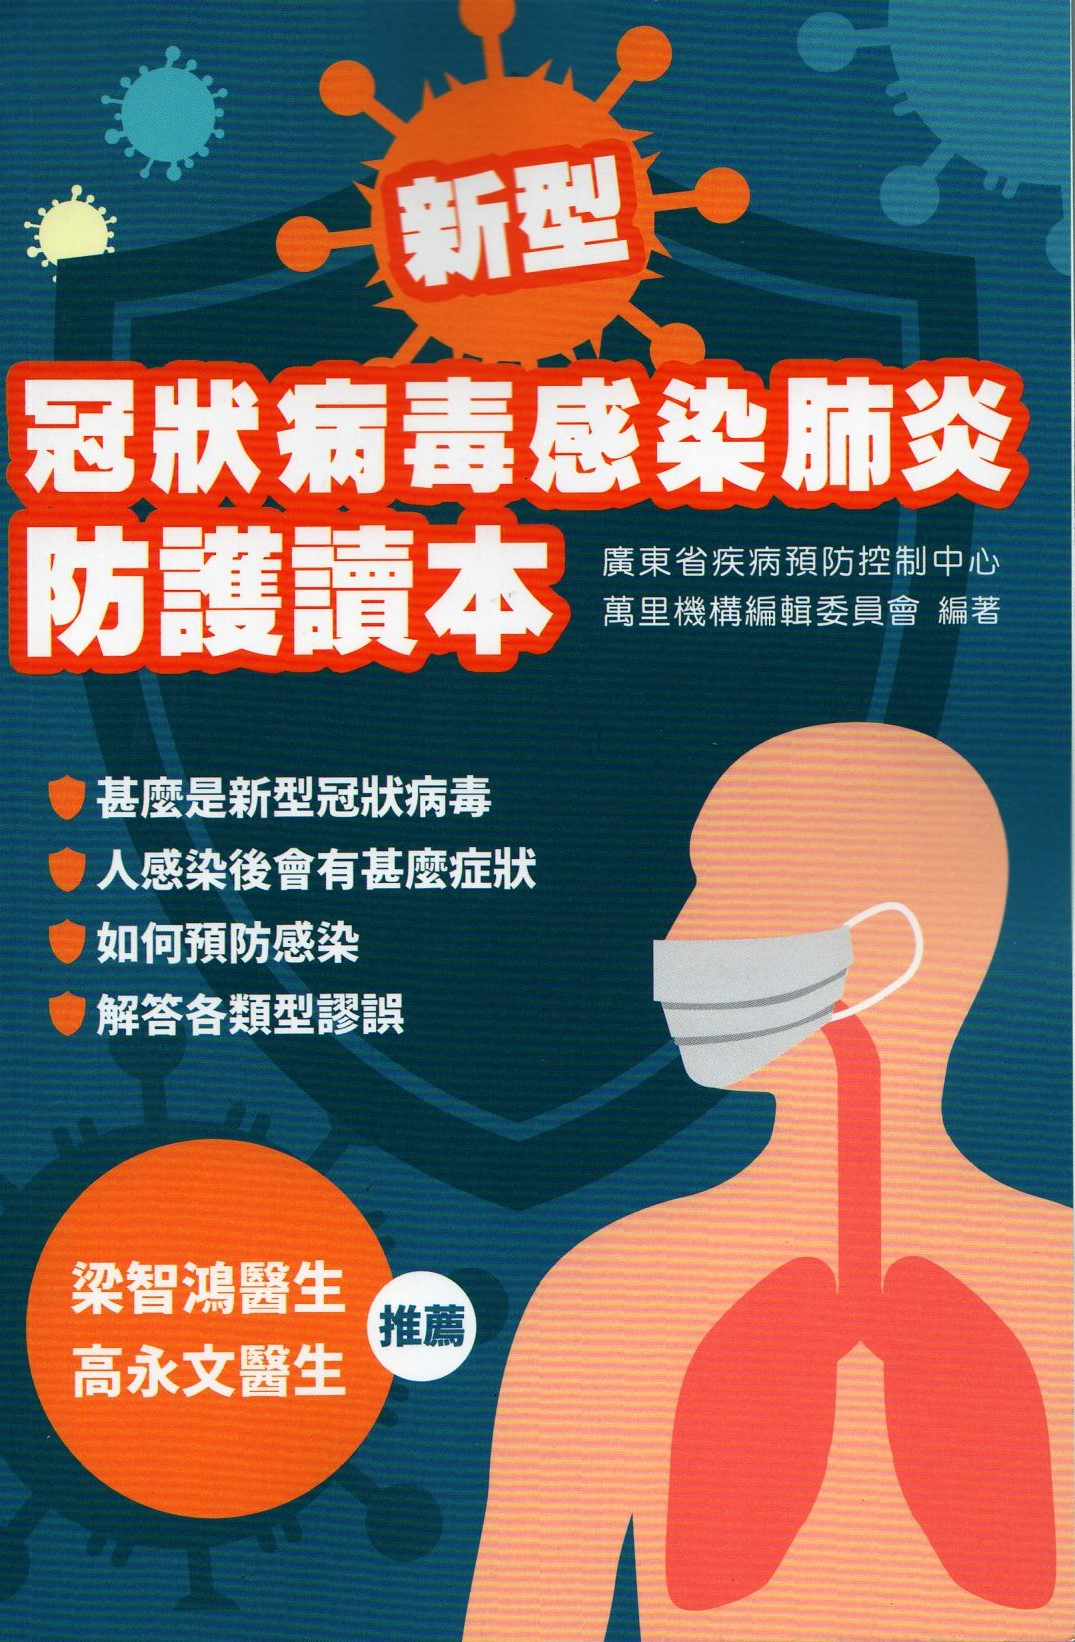 http://www.familyhealth.com.hk/files/full/1064_0.jpg